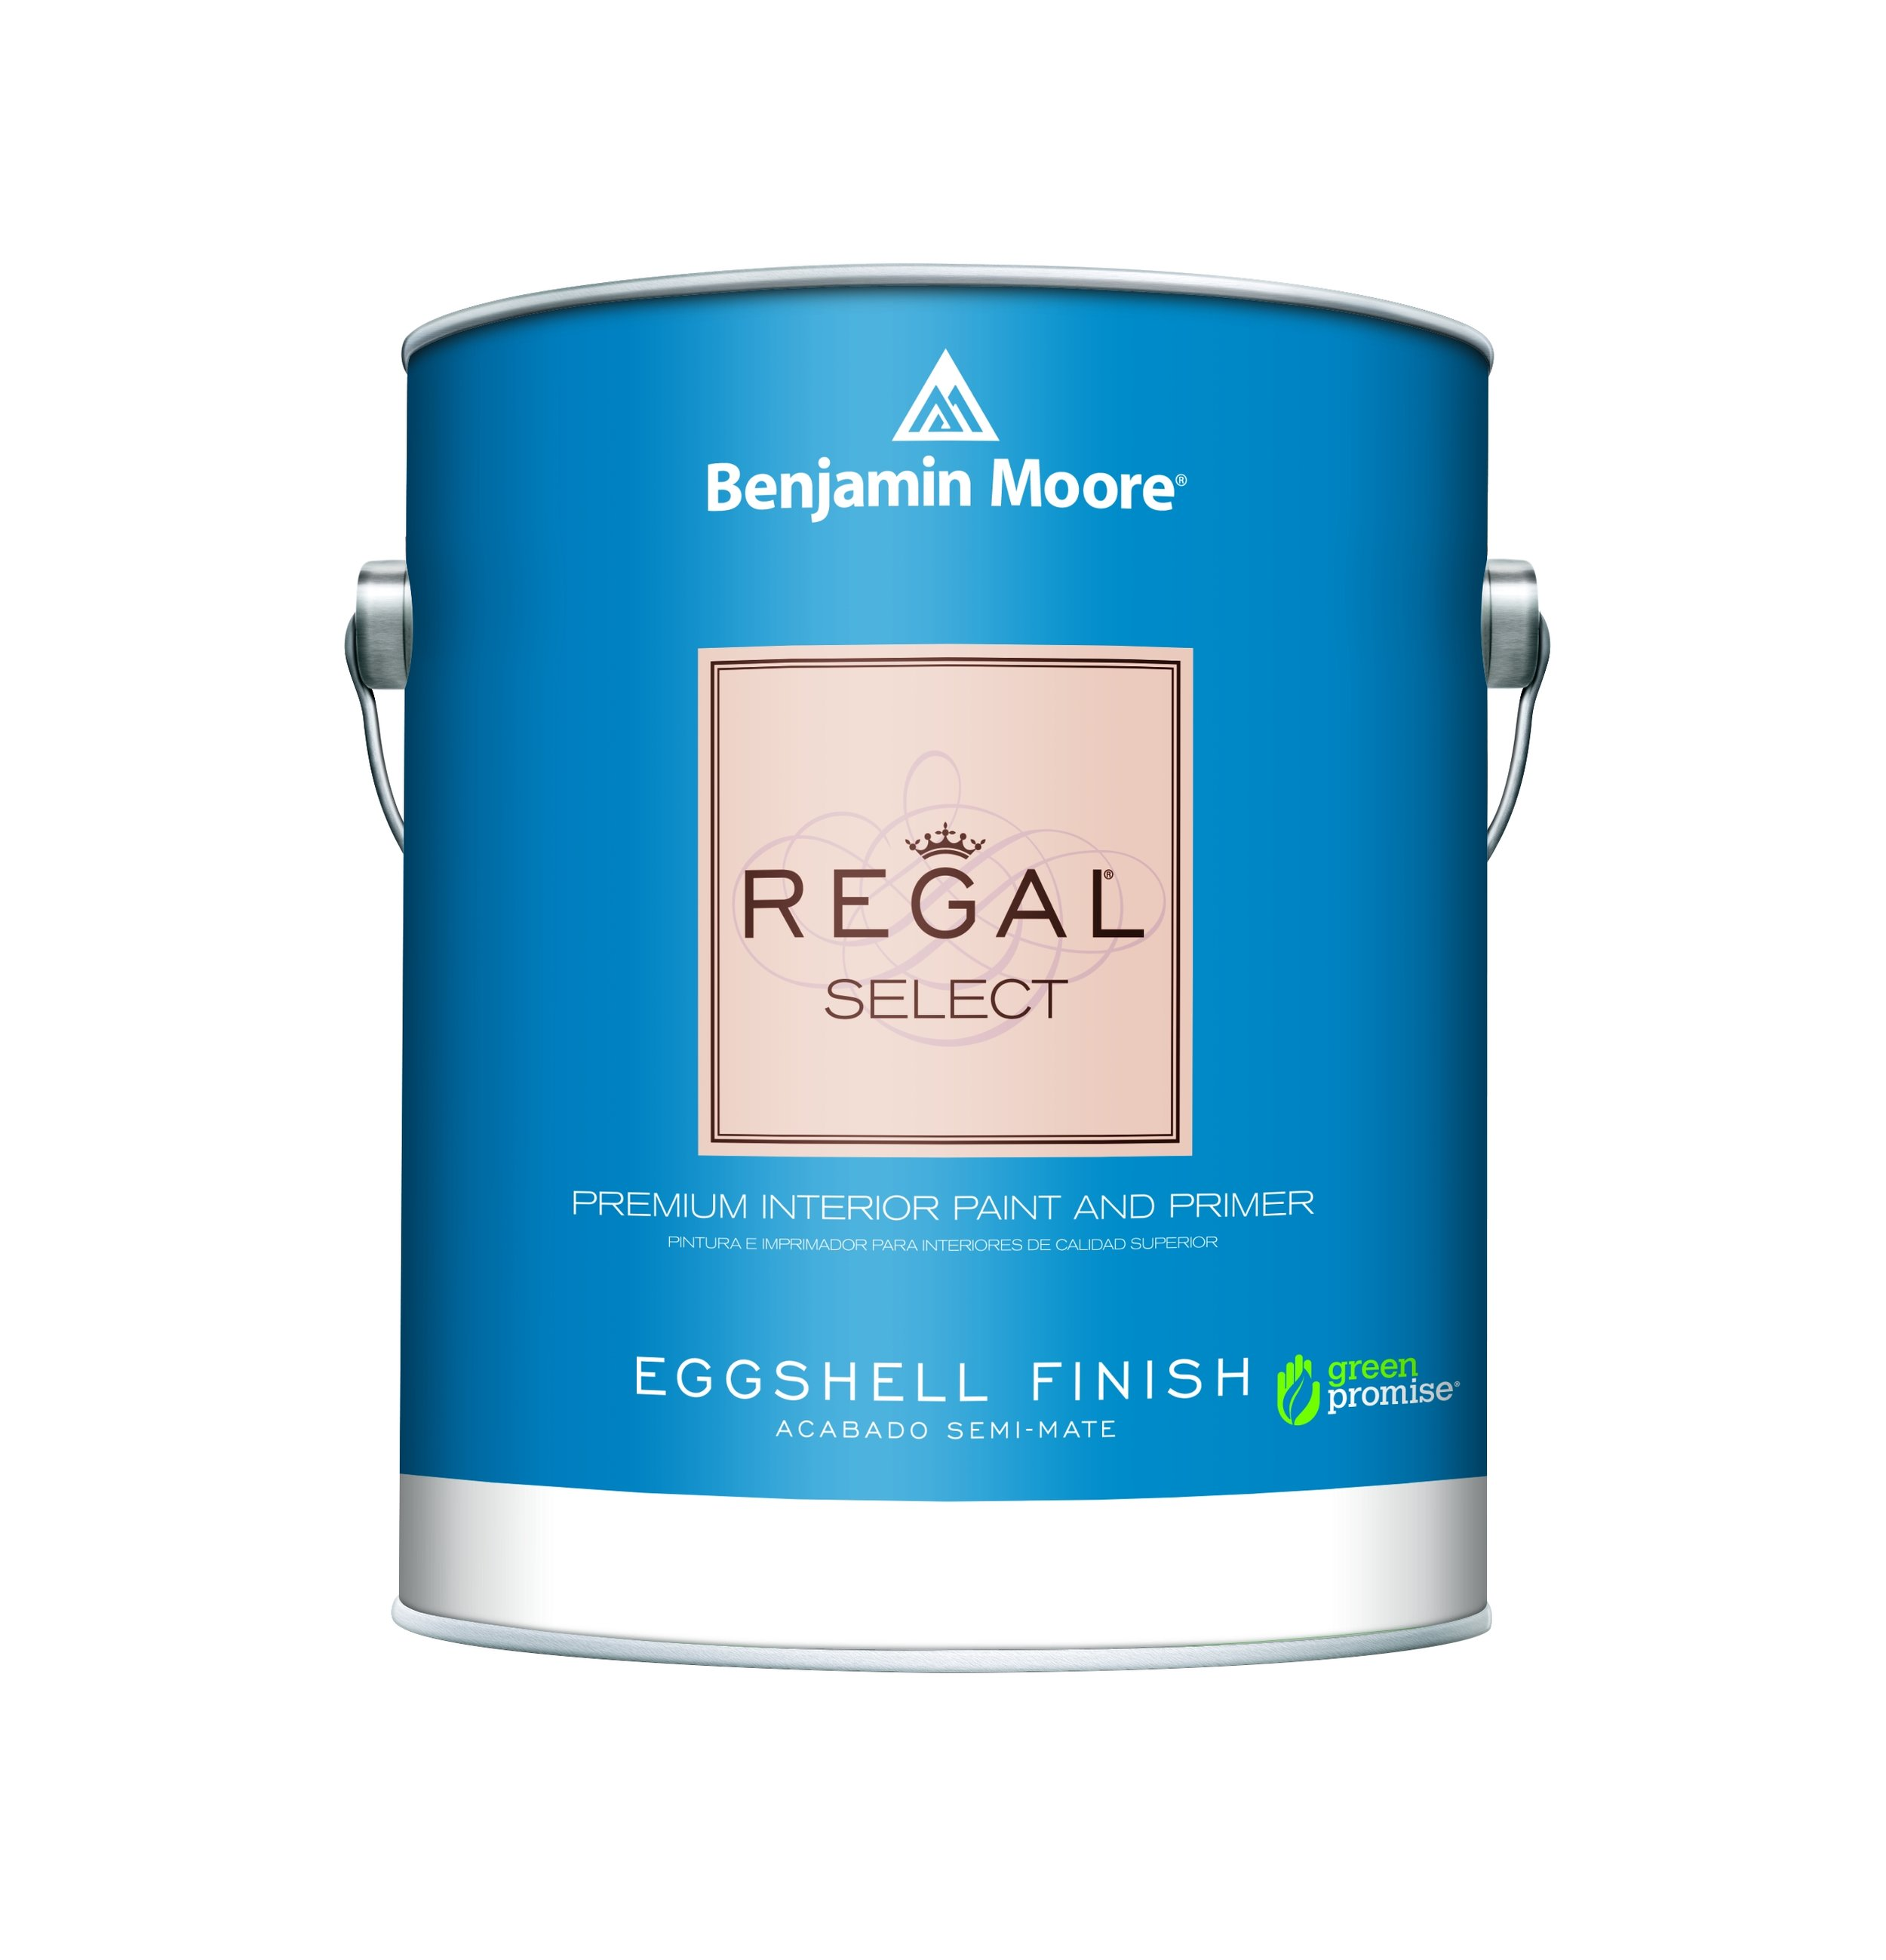 Regal Select Interior Paint    Learn More